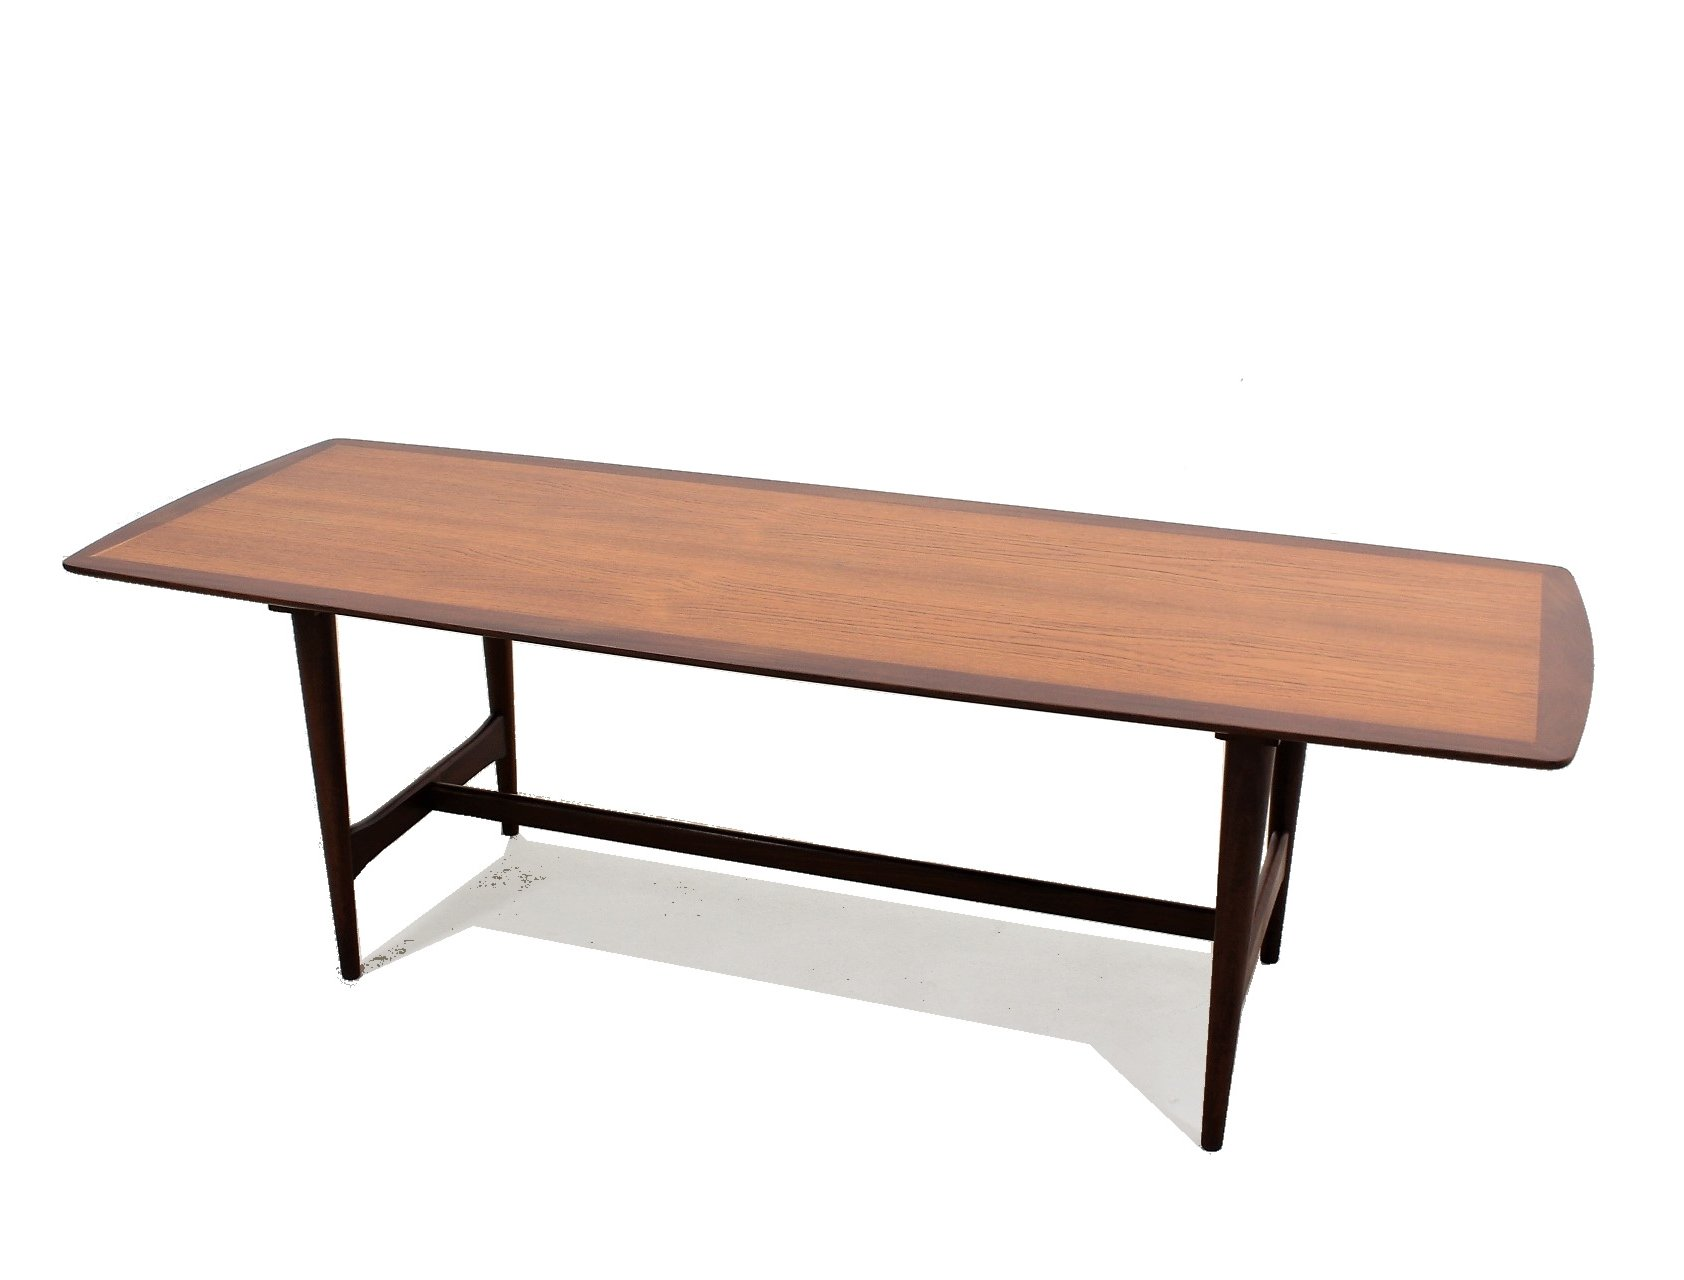 Scandinavian Design Ilse Mobel Teak Coffee Table 1950s 55431